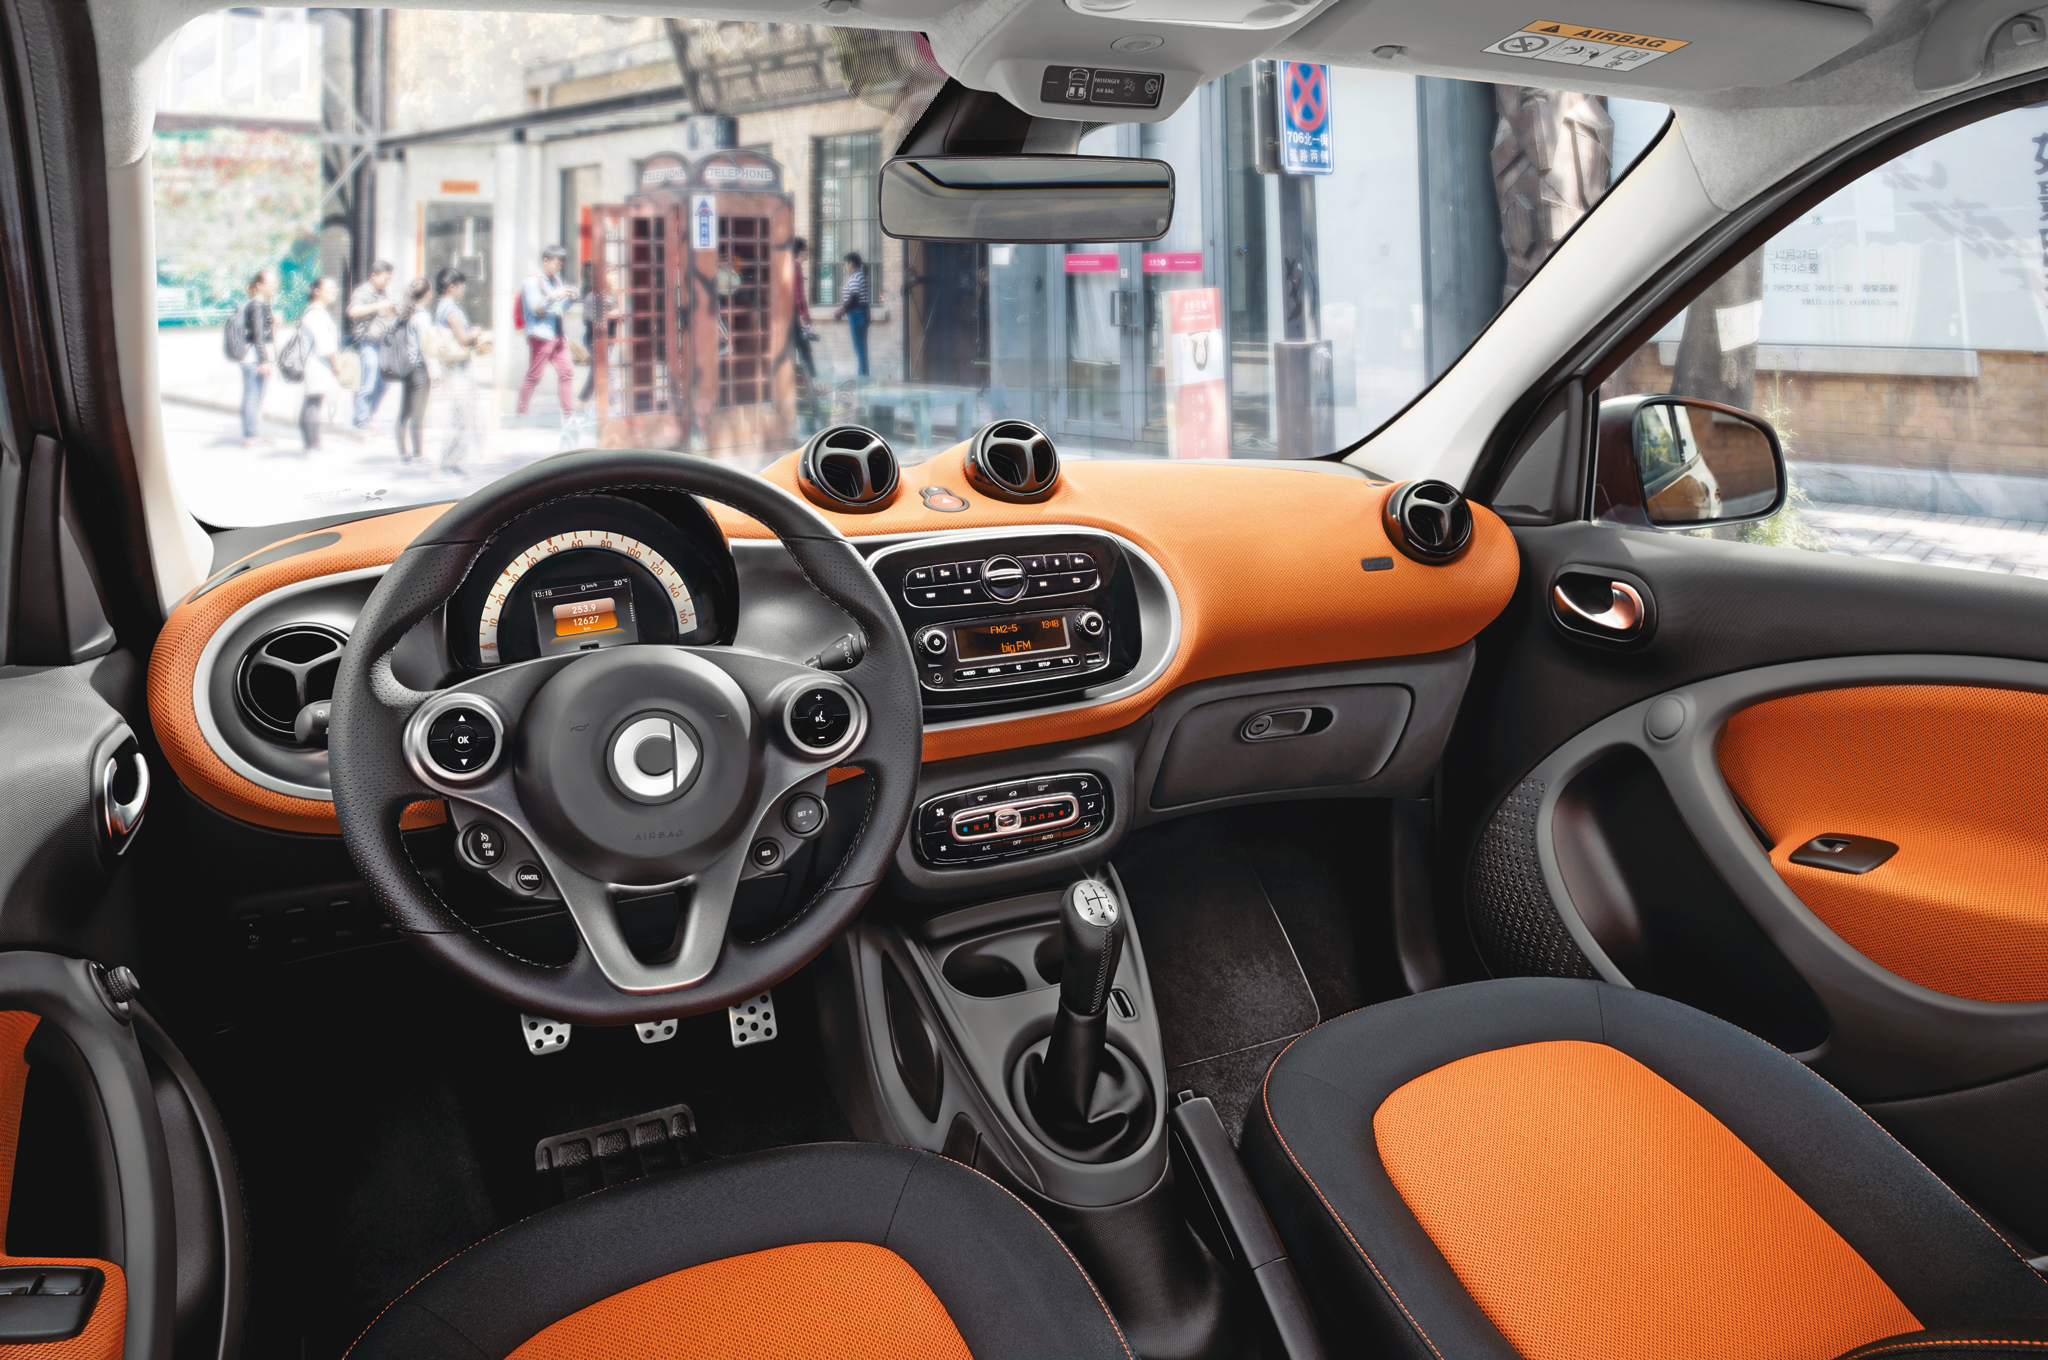 2016 Smart Fortwo Interior and Dashboard